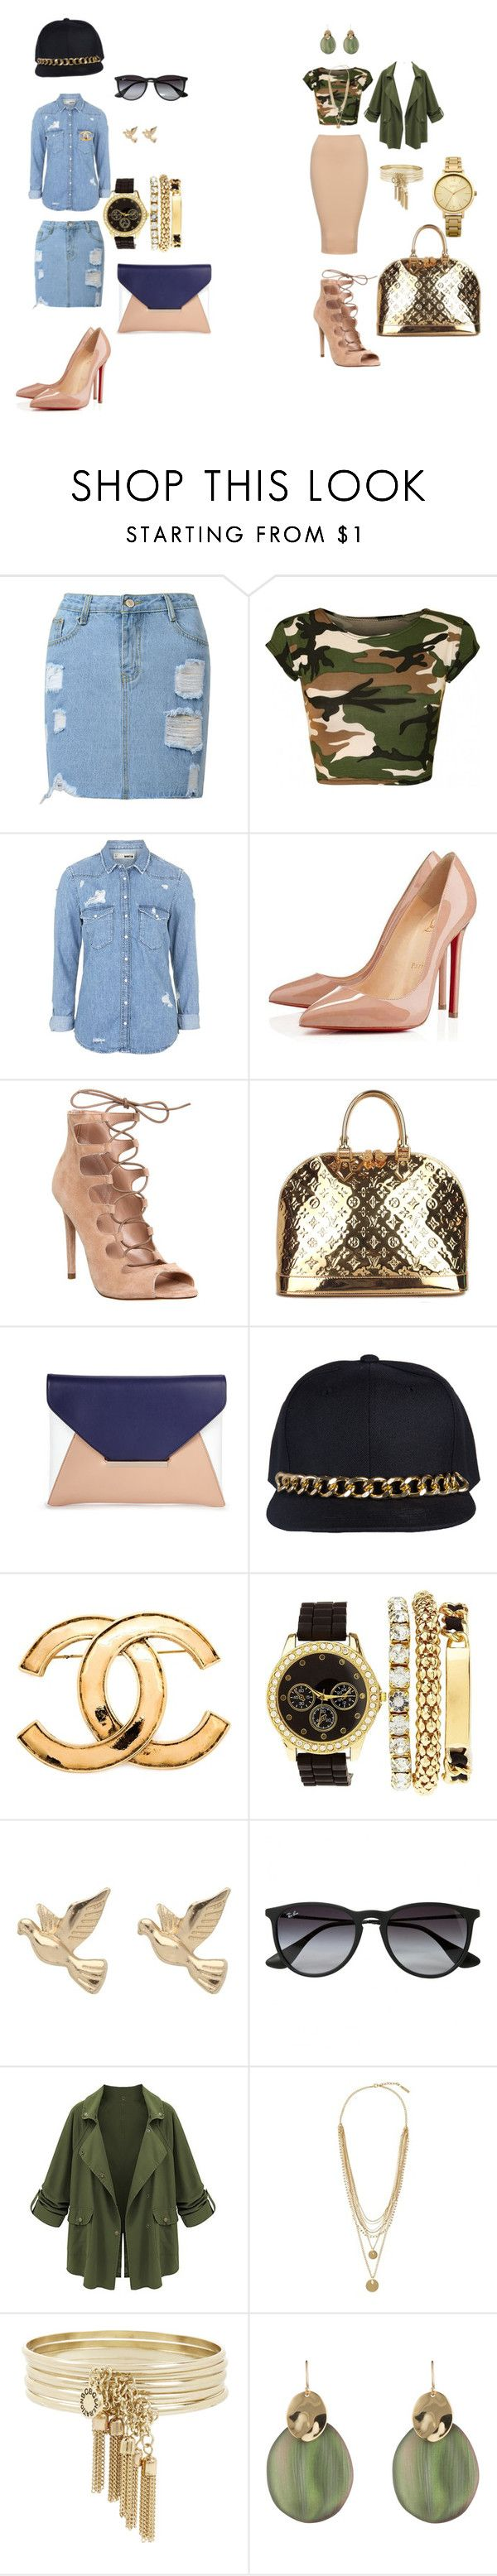 Riri street style by glamfash on Polyvore featuring mode, Topshop, Christian Louboutin, Office, Louis Vuitton, Sole Society, Charlotte Russe, Oasis, BCBGeneration and Alexis Bittar